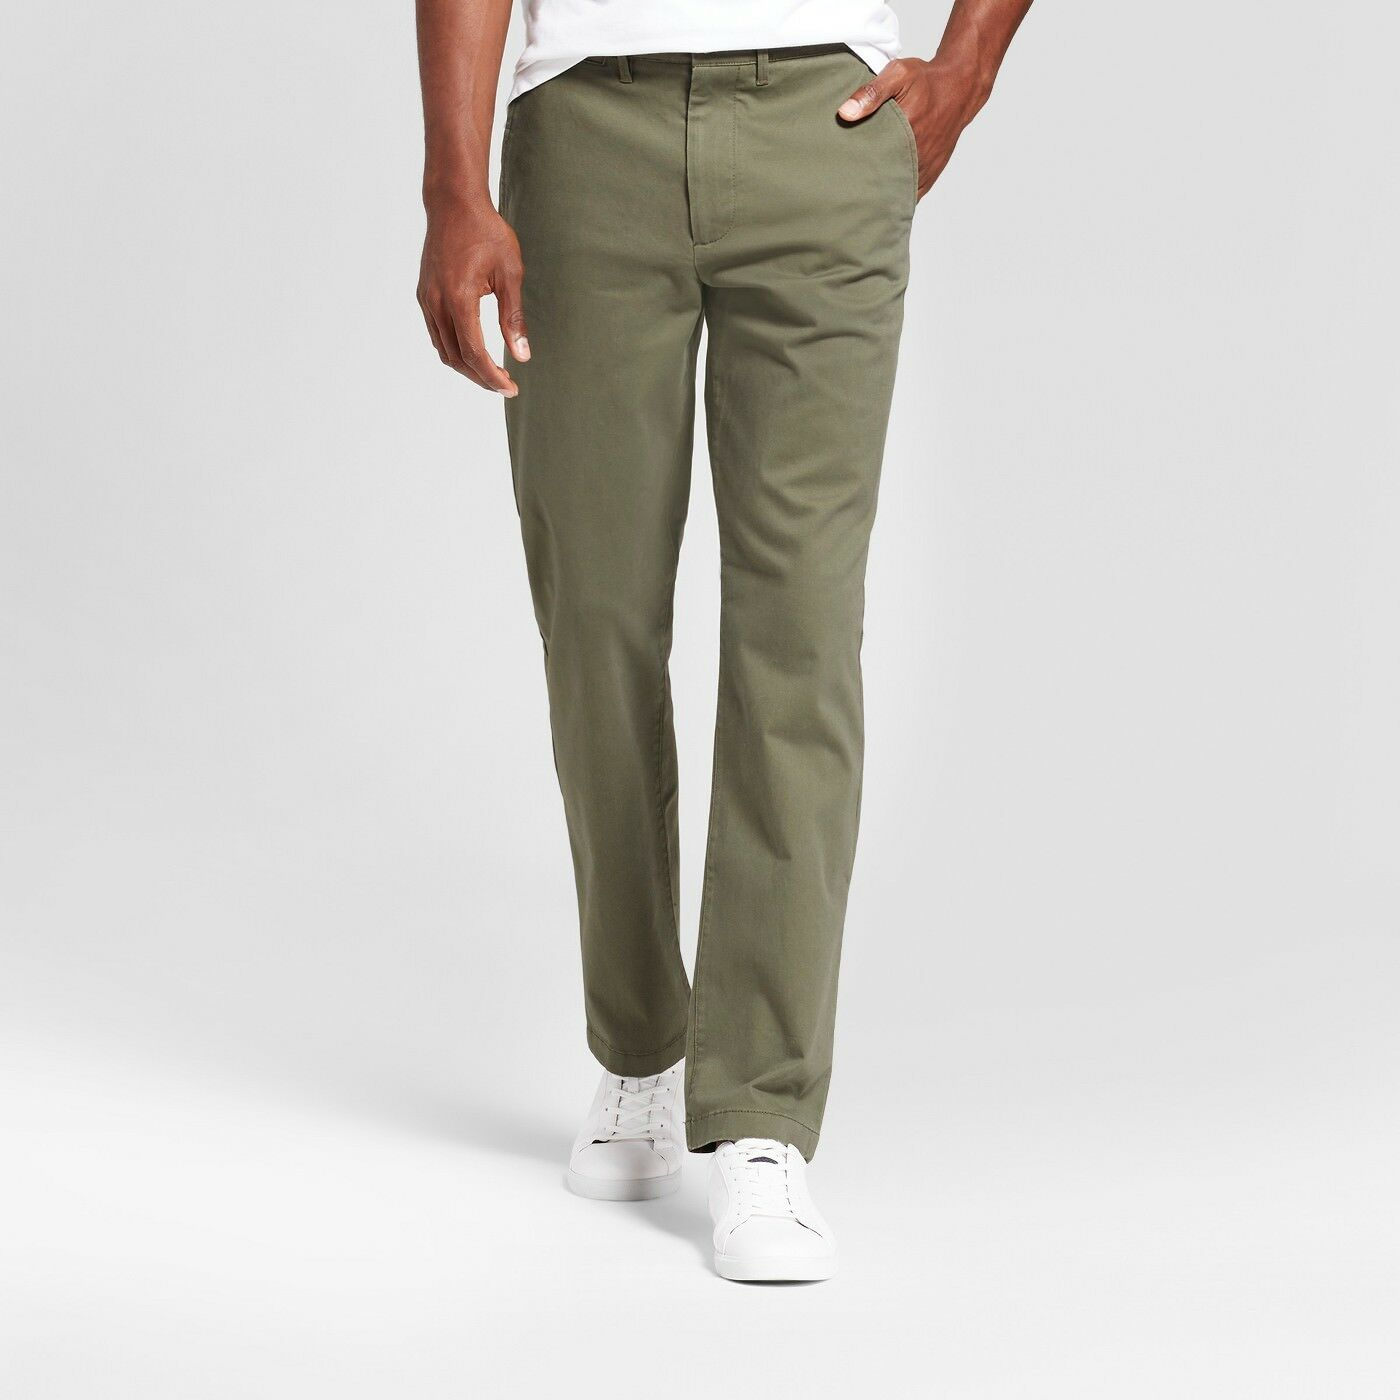 0487806d53cd Details about Men's Slim Fit Hennepin Chino Pants - Goodfellow & Co™ Olive